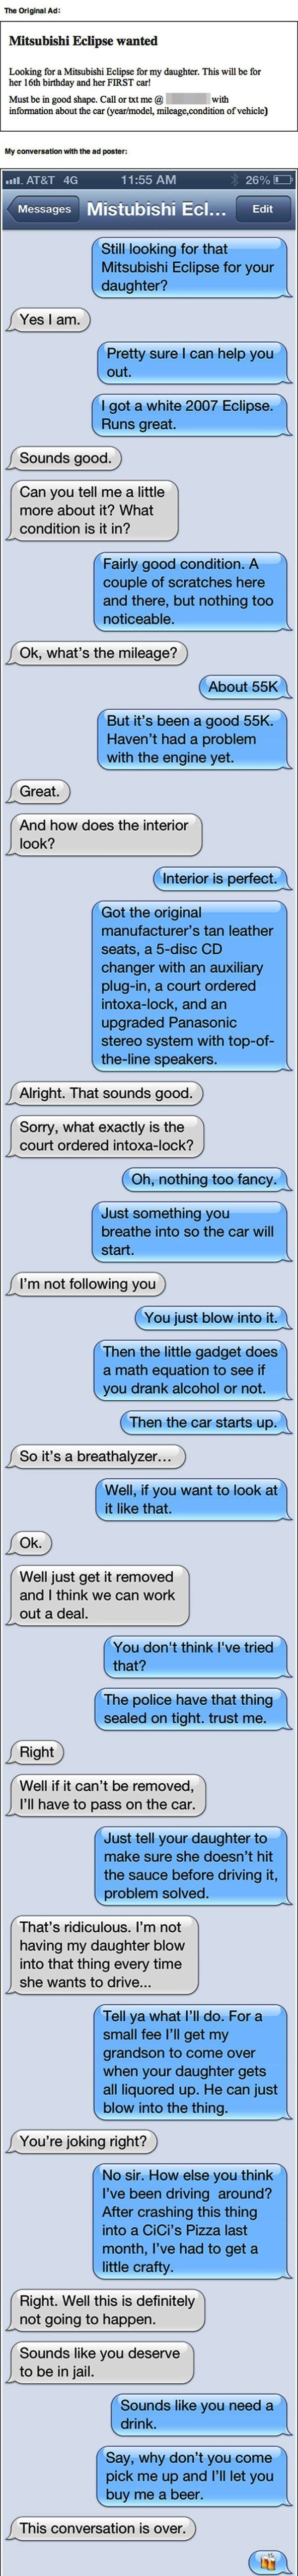 Text Pranks: 39 Glorious Pranks for April Fools' Day